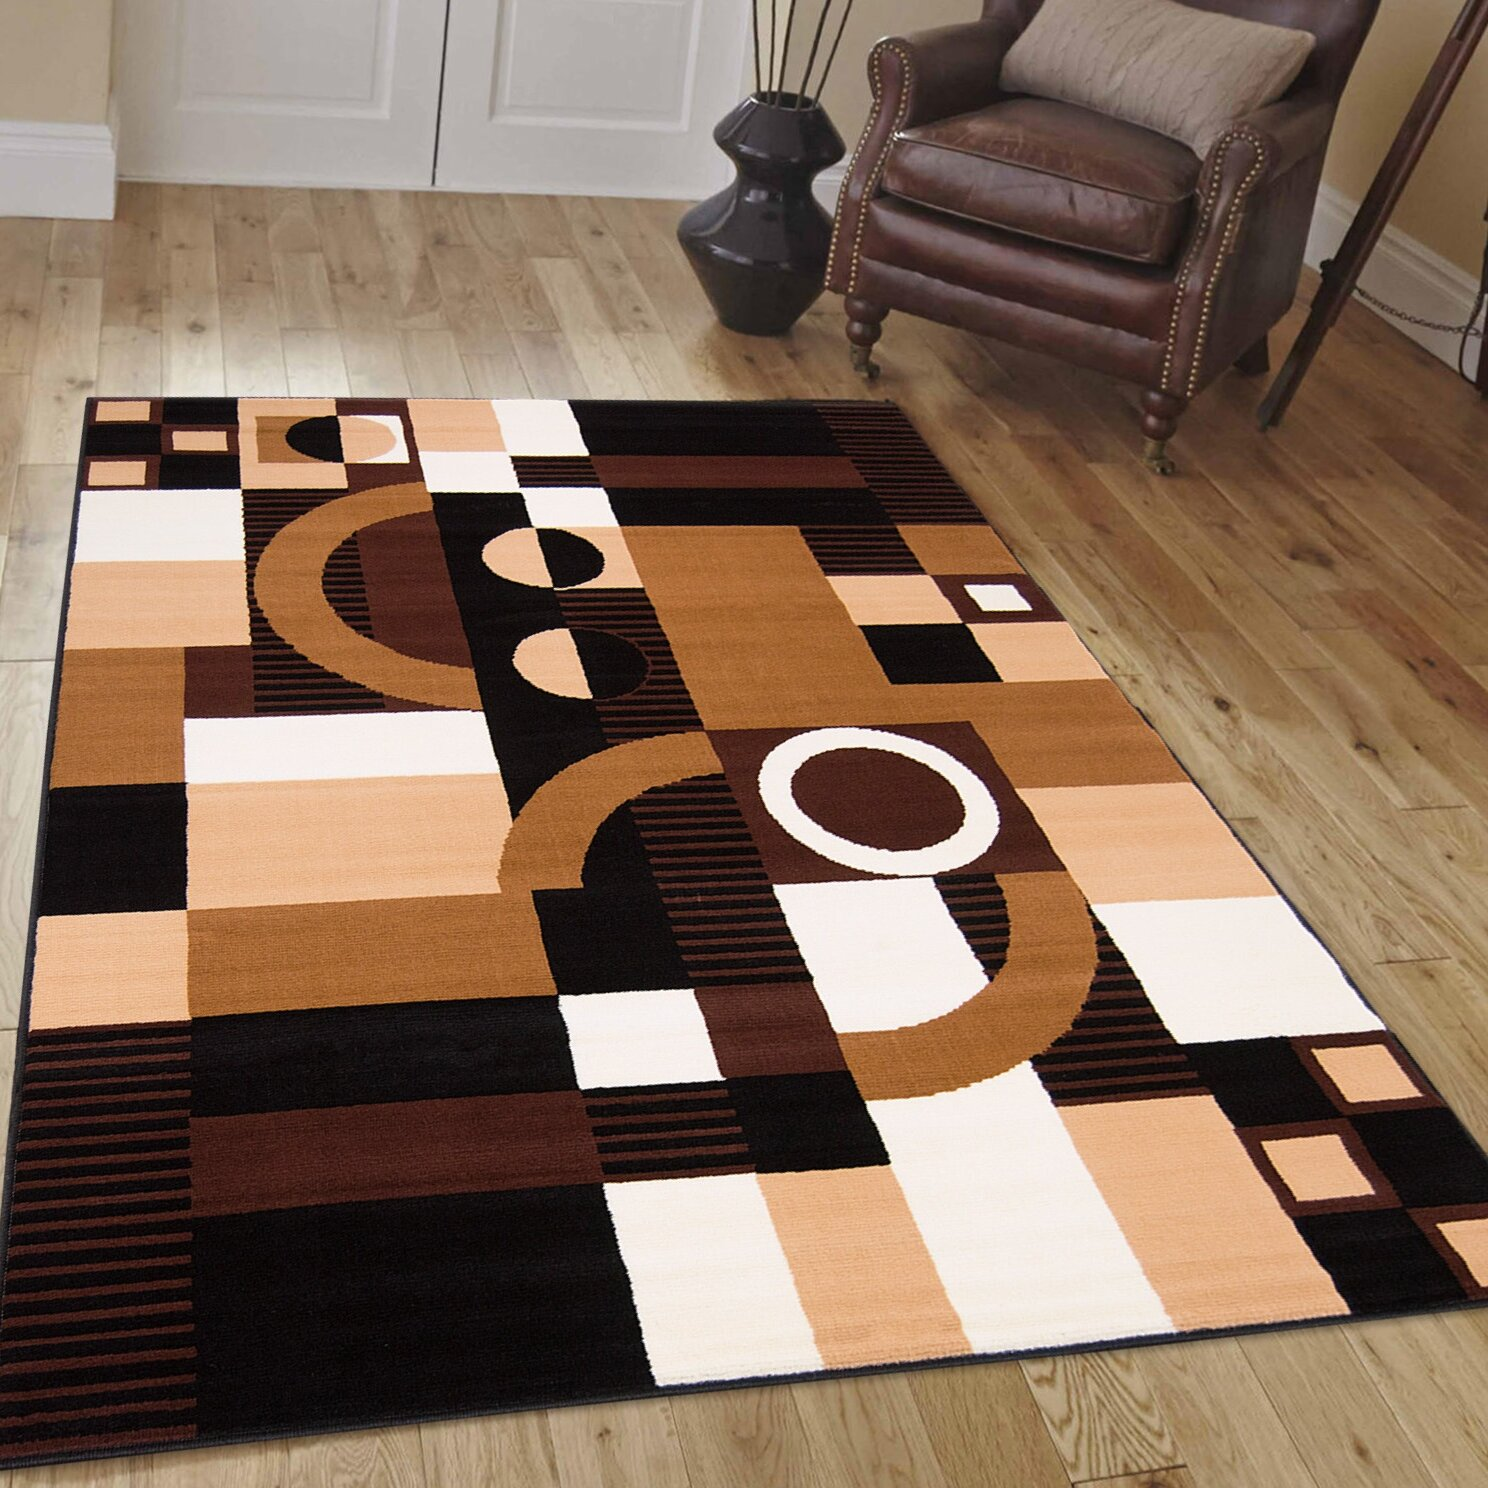 allstar rugs hand woven black brown area rug ebay. Black Bedroom Furniture Sets. Home Design Ideas